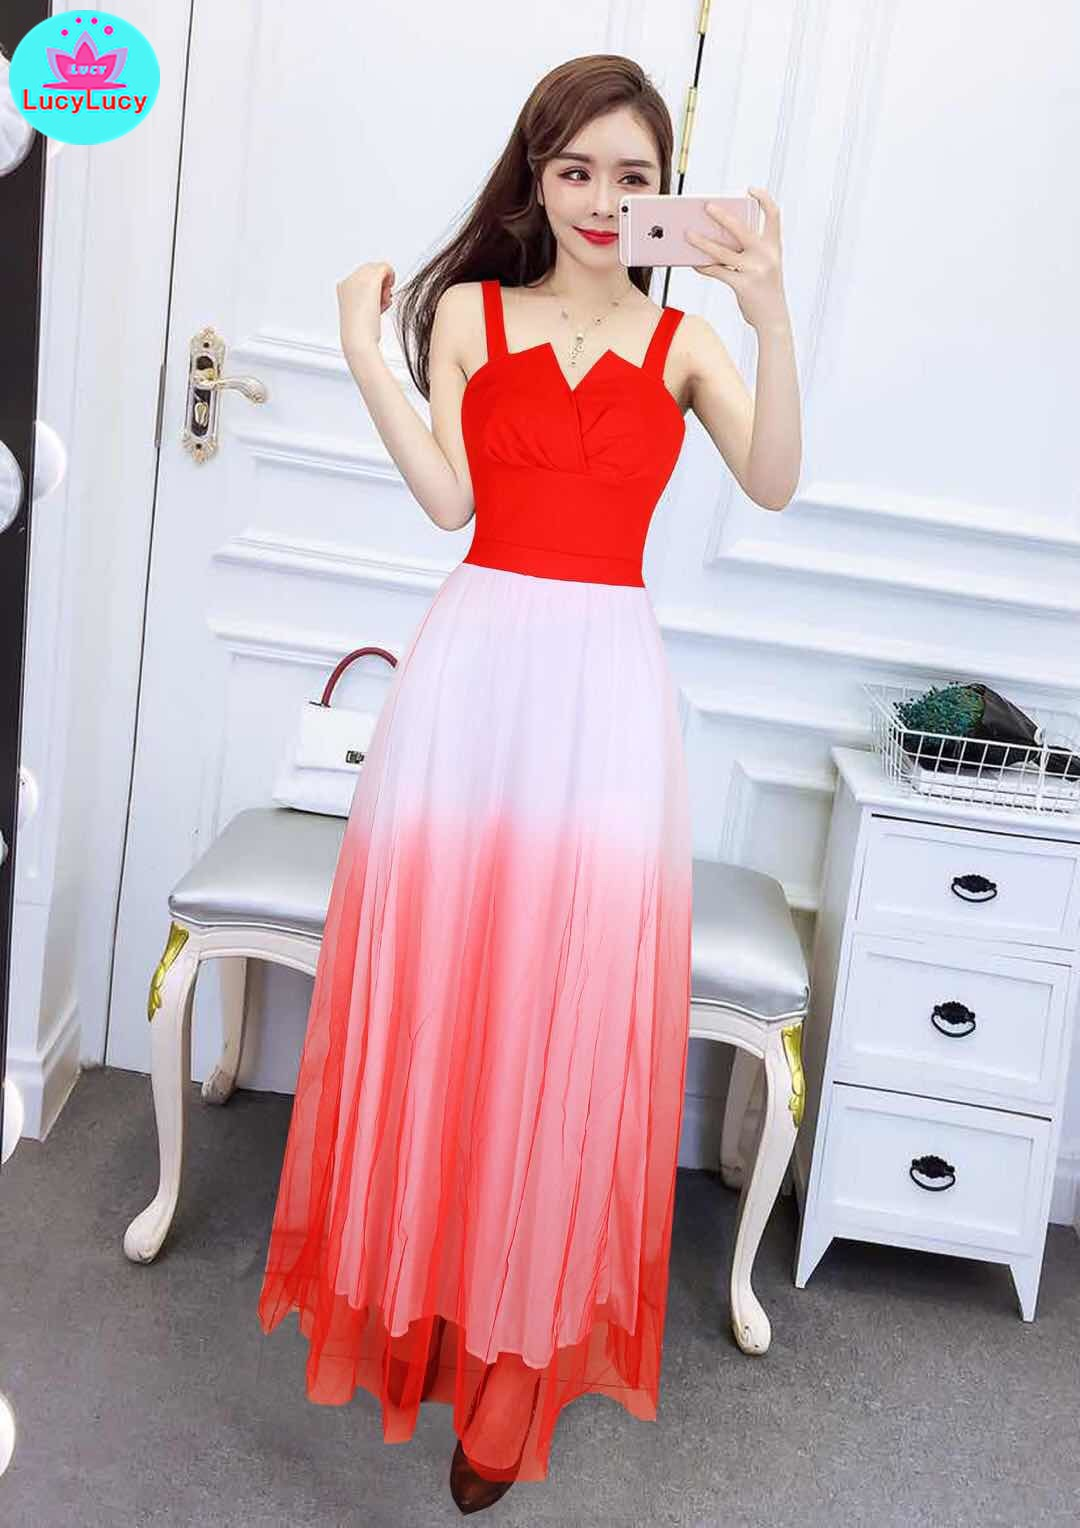 2019 summer Europe and the United States new banquet sexy mesh slim elegant strap dress in Dresses from Women 39 s Clothing